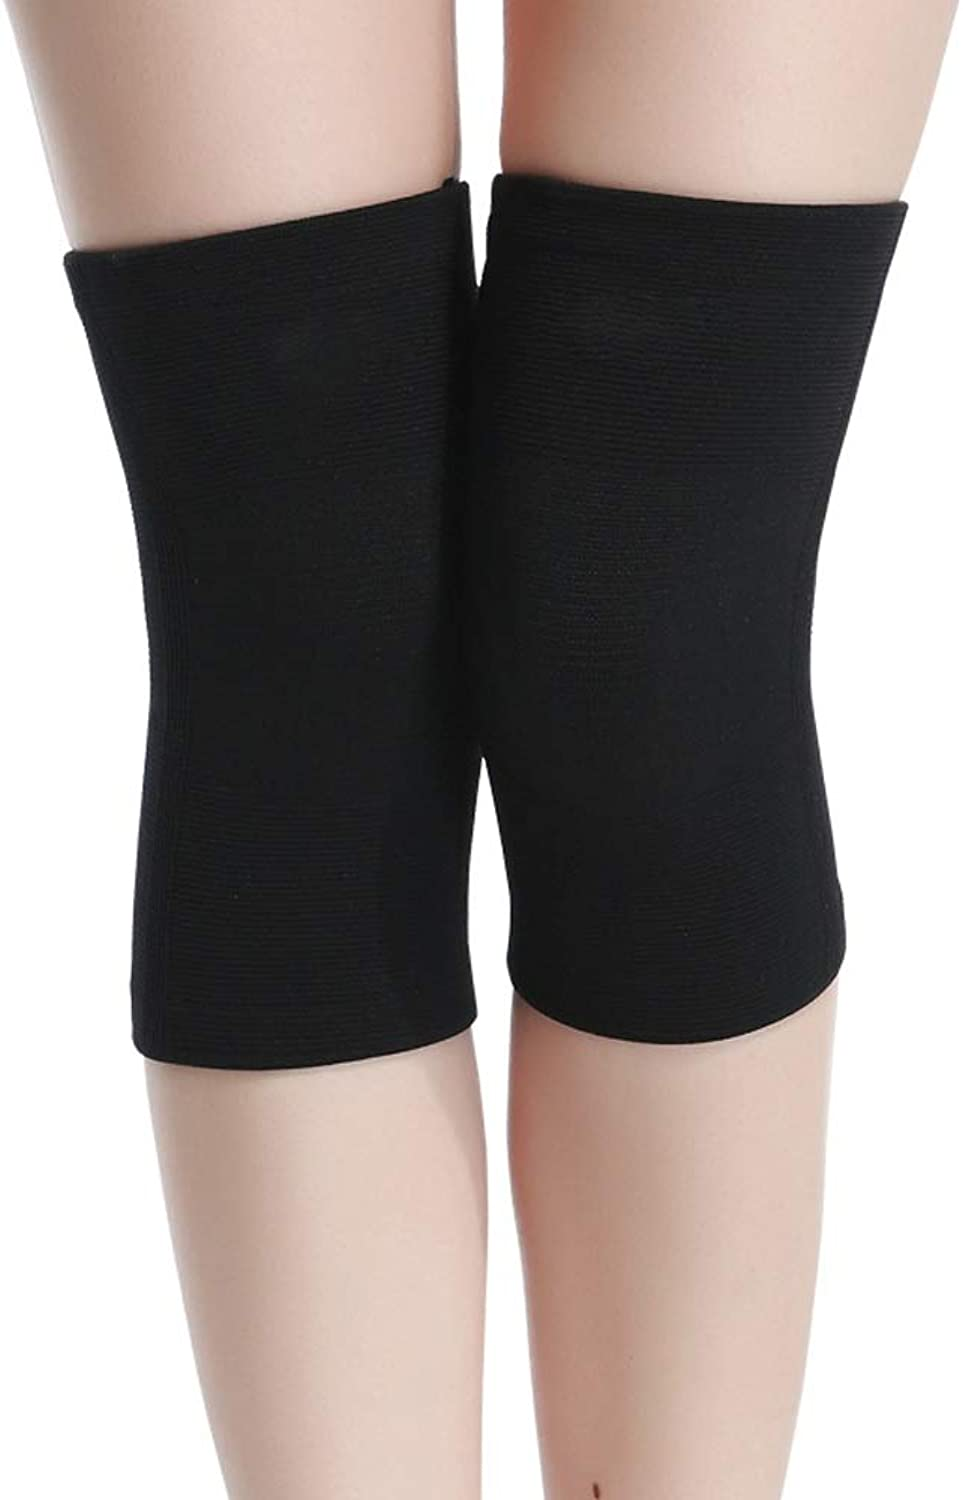 Invisible Knee Pads Cold Warm Men and Women Special Autumn and Winter Old Cold Leg Joints Four Seasons Thin Section no Movement Sports Invisible NonSlip Seasons Warm Knee Pads